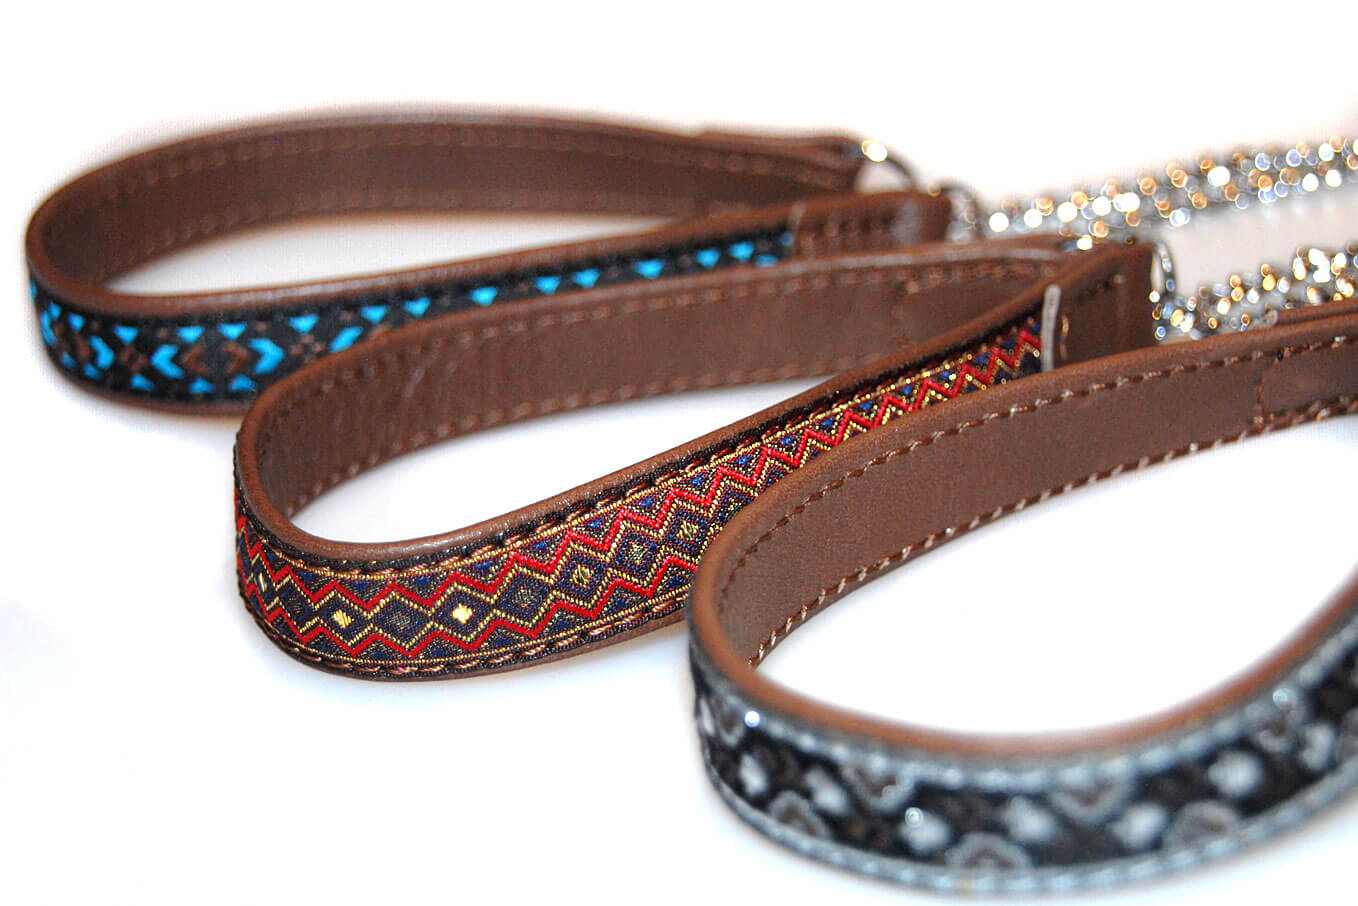 Martingale leather collars with decorative ribbons